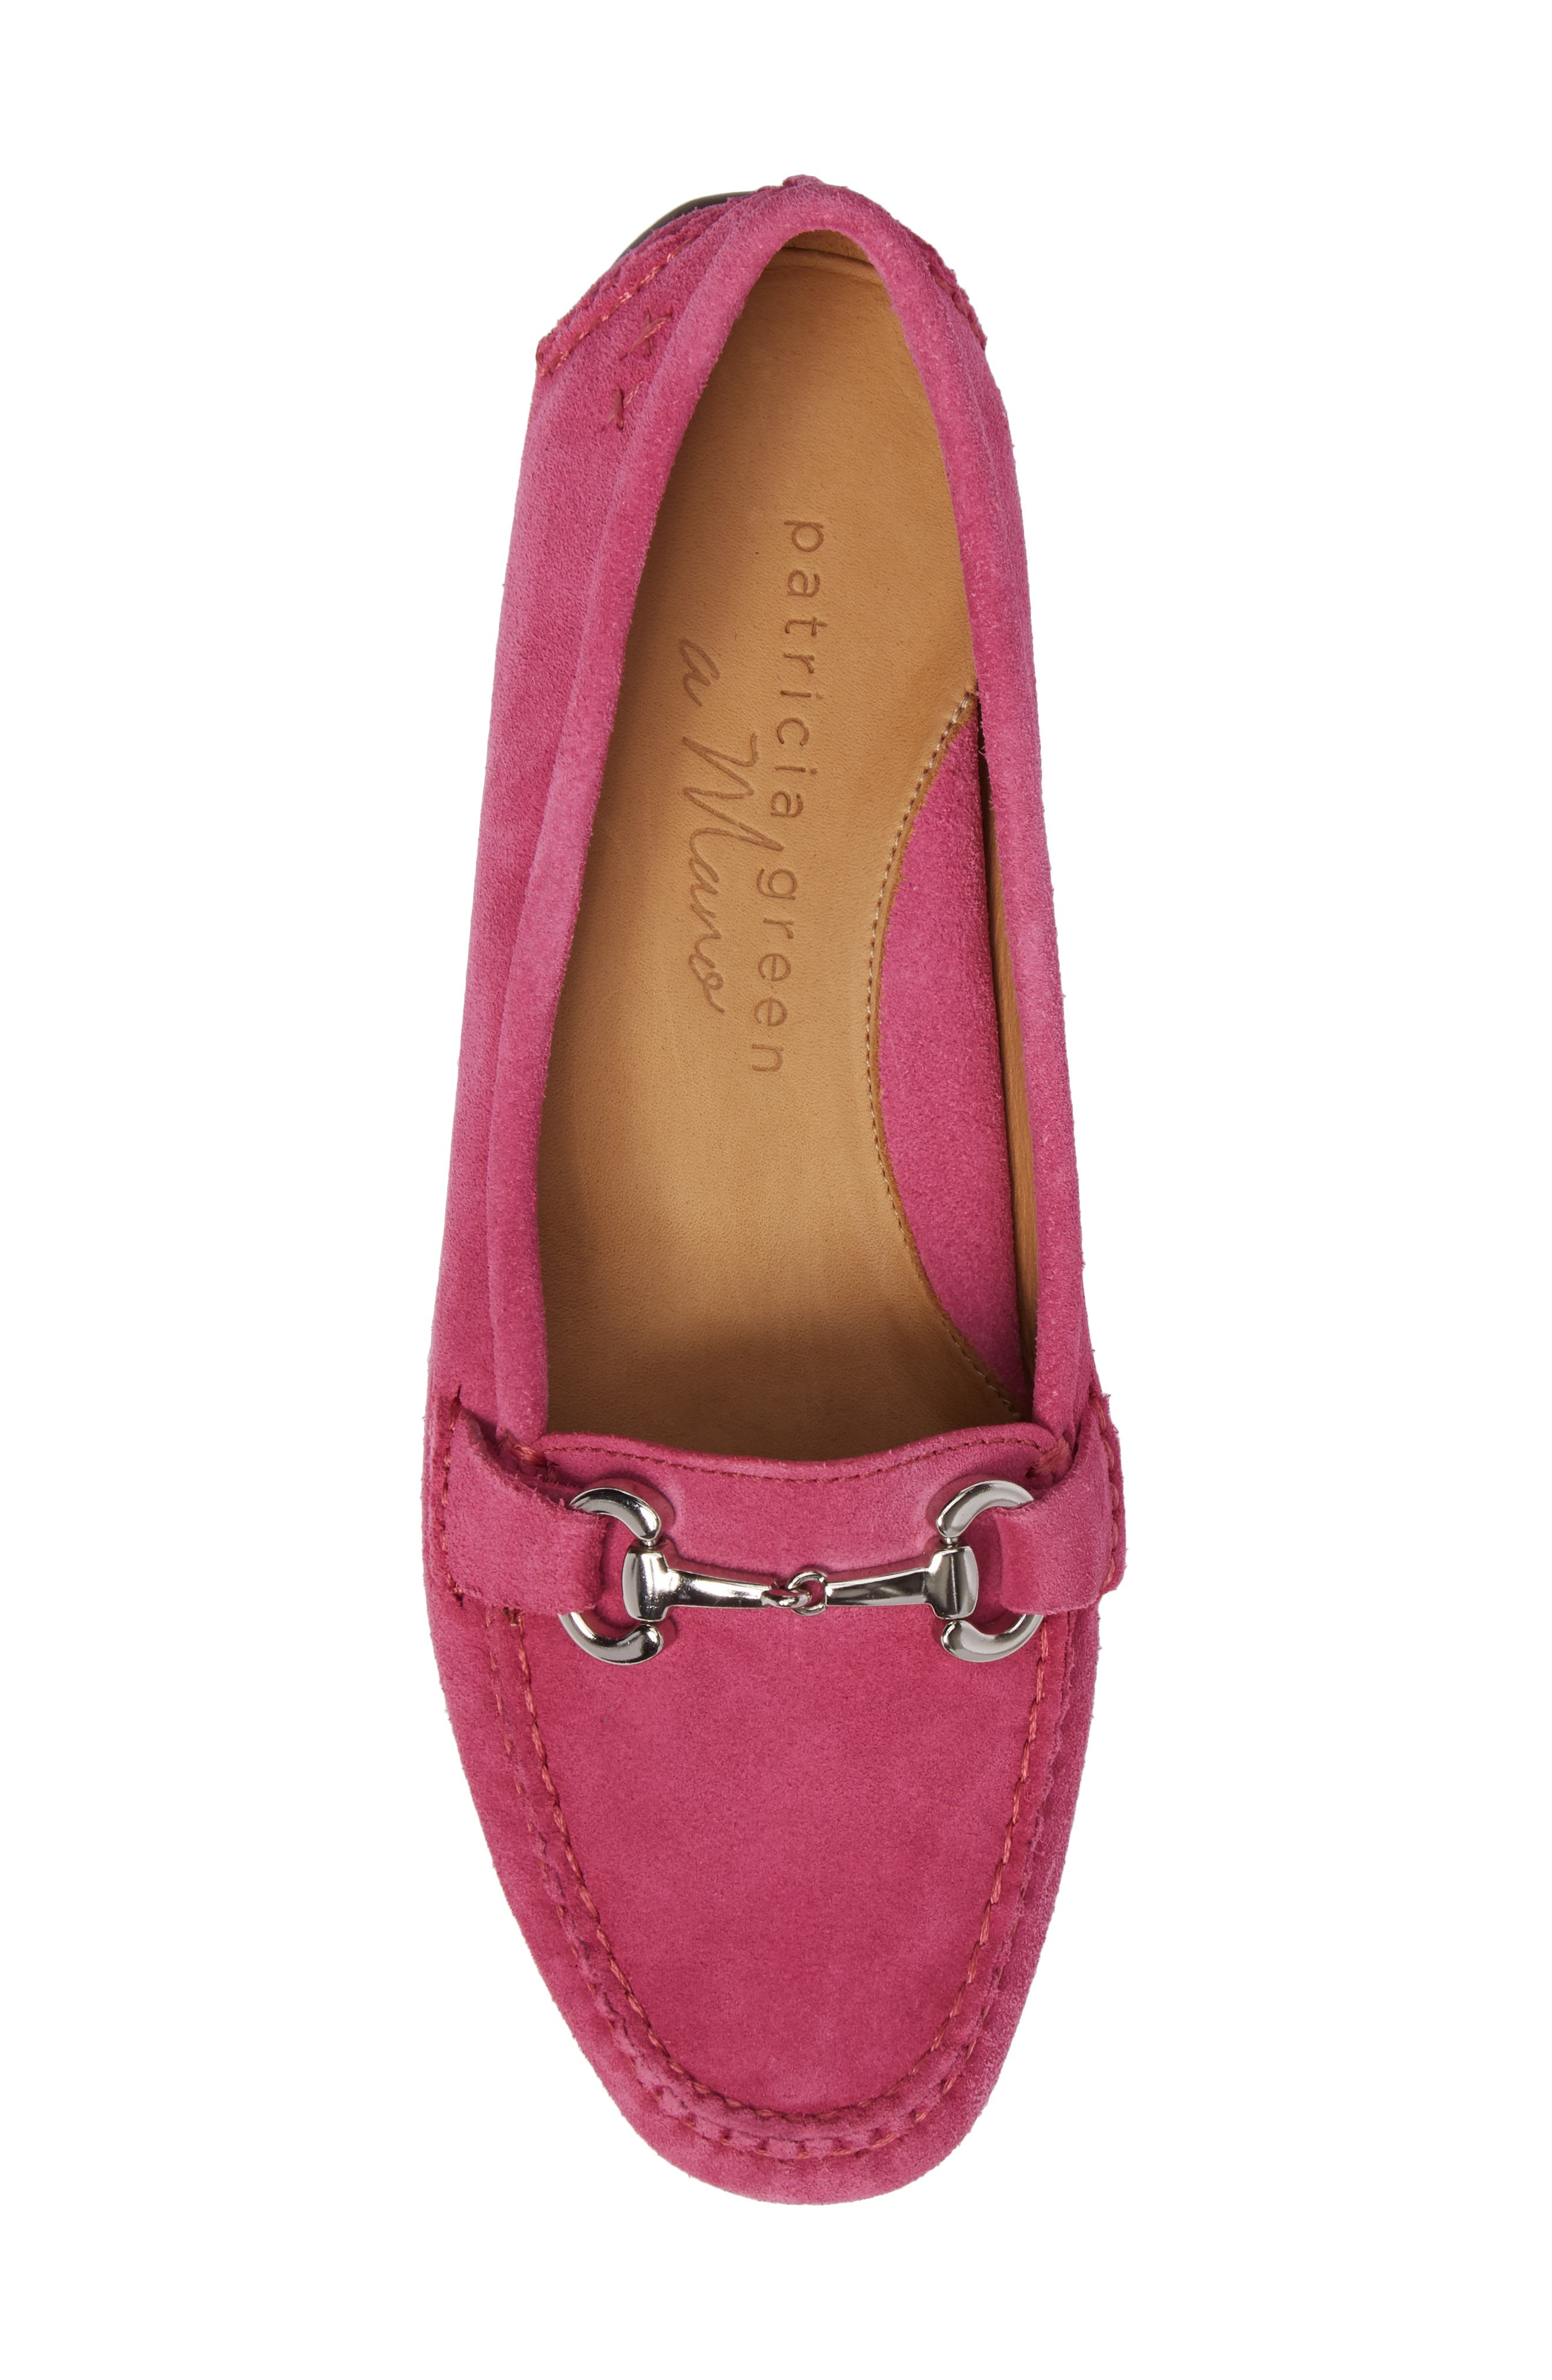 'Carrie' Loafer,                             Alternate thumbnail 5, color,                             670